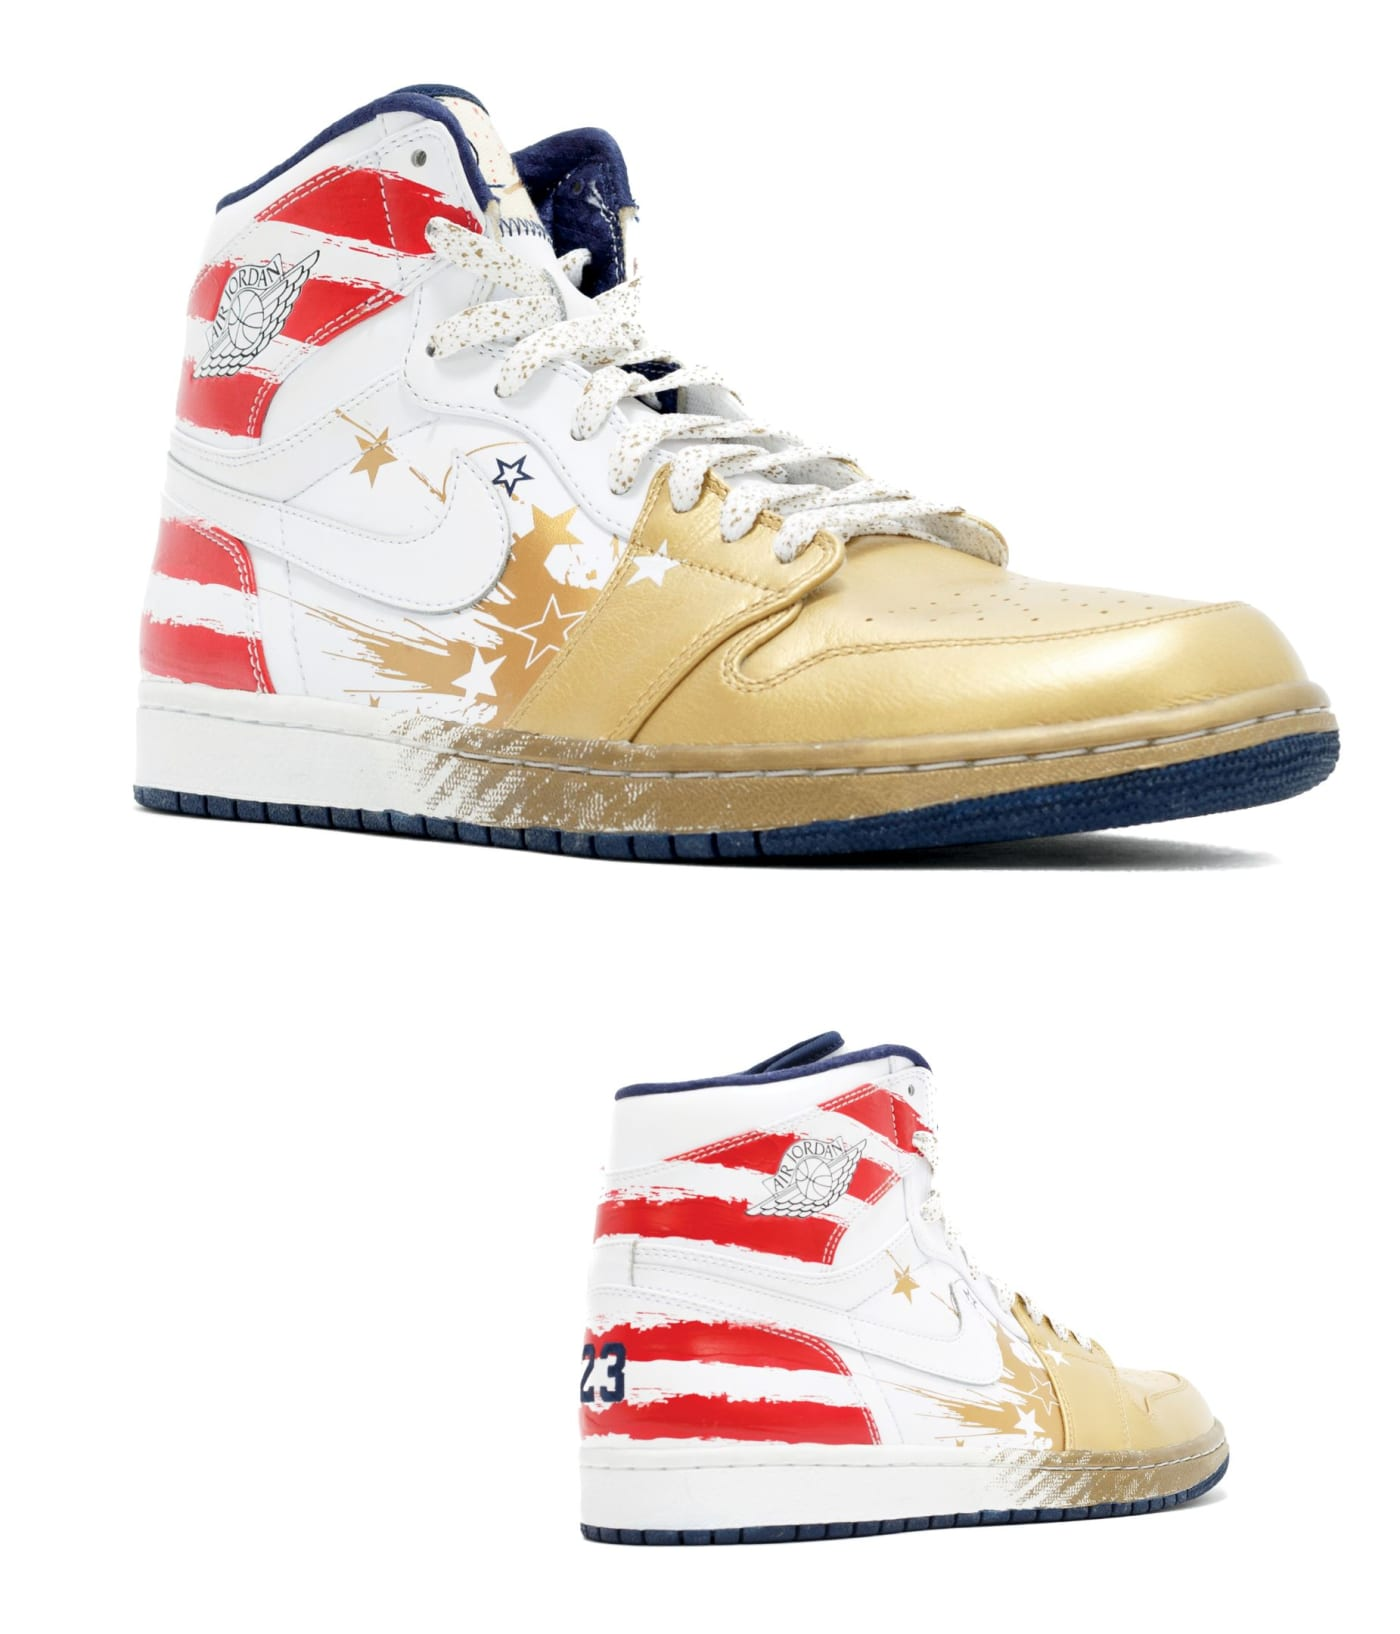 Giày thể thao collab DAVID WHITE X JORDAN BRAND, AIR JORDAN I RETRO WINGS FOR THE FUTURE